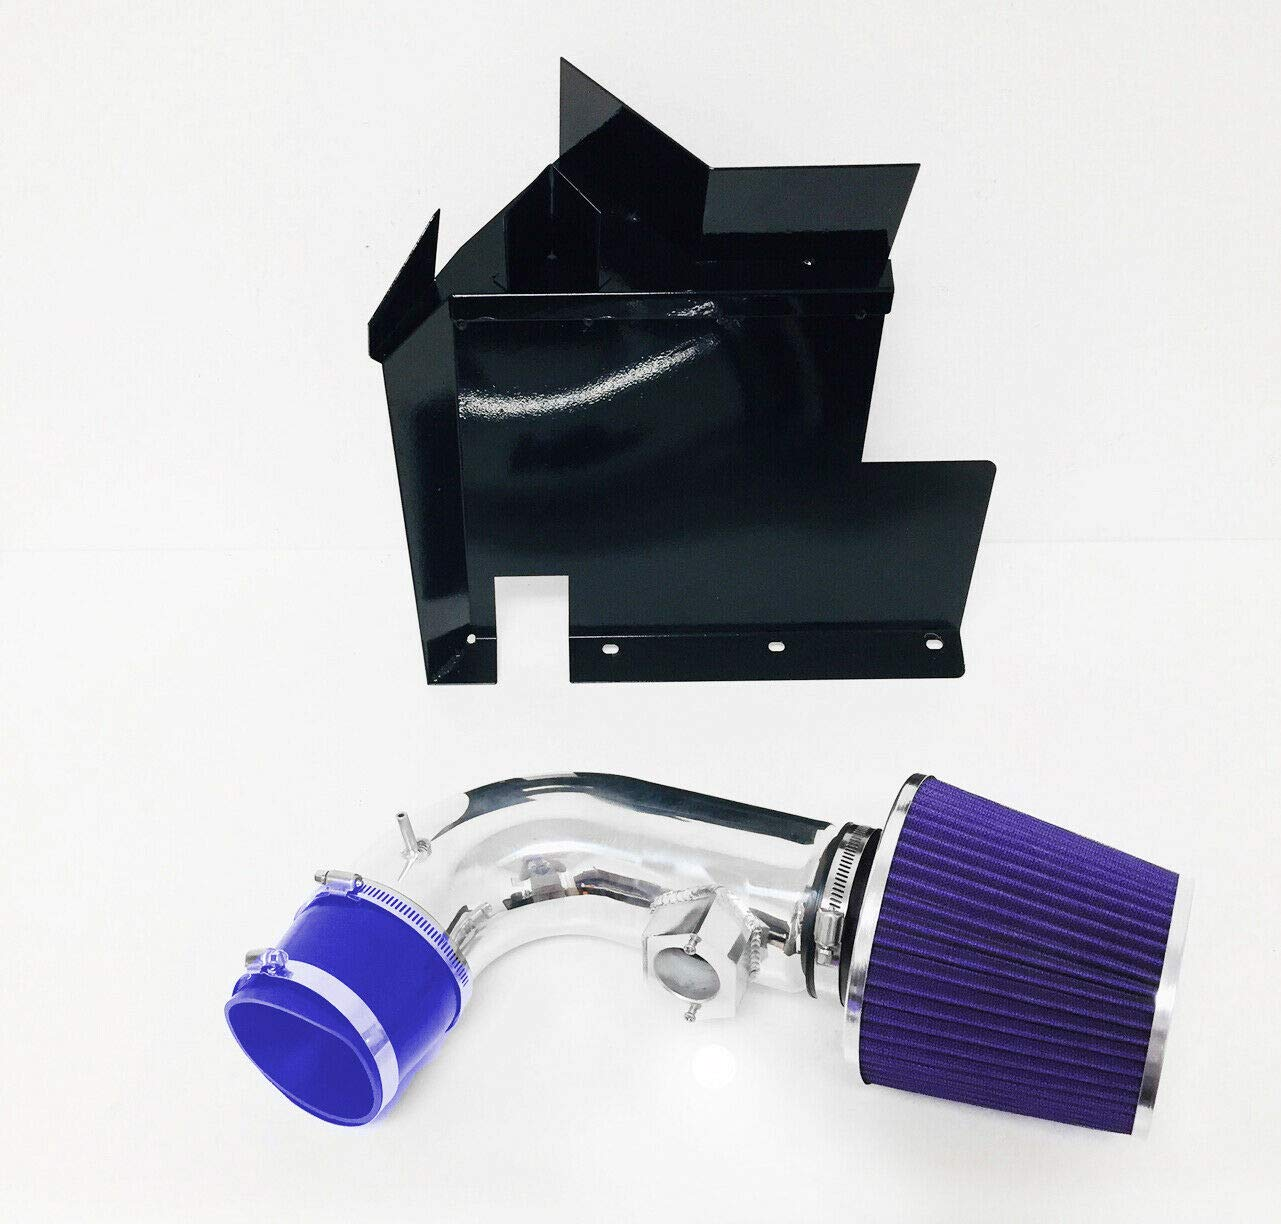 Performance Heat Shield Cold Air Intake Filter System Kit works with 2006 BMW 330i /& 2007 2008 2009 2010 2011 BMW 128i 328i 3.0L 6cyl Black Accessories /& Filter